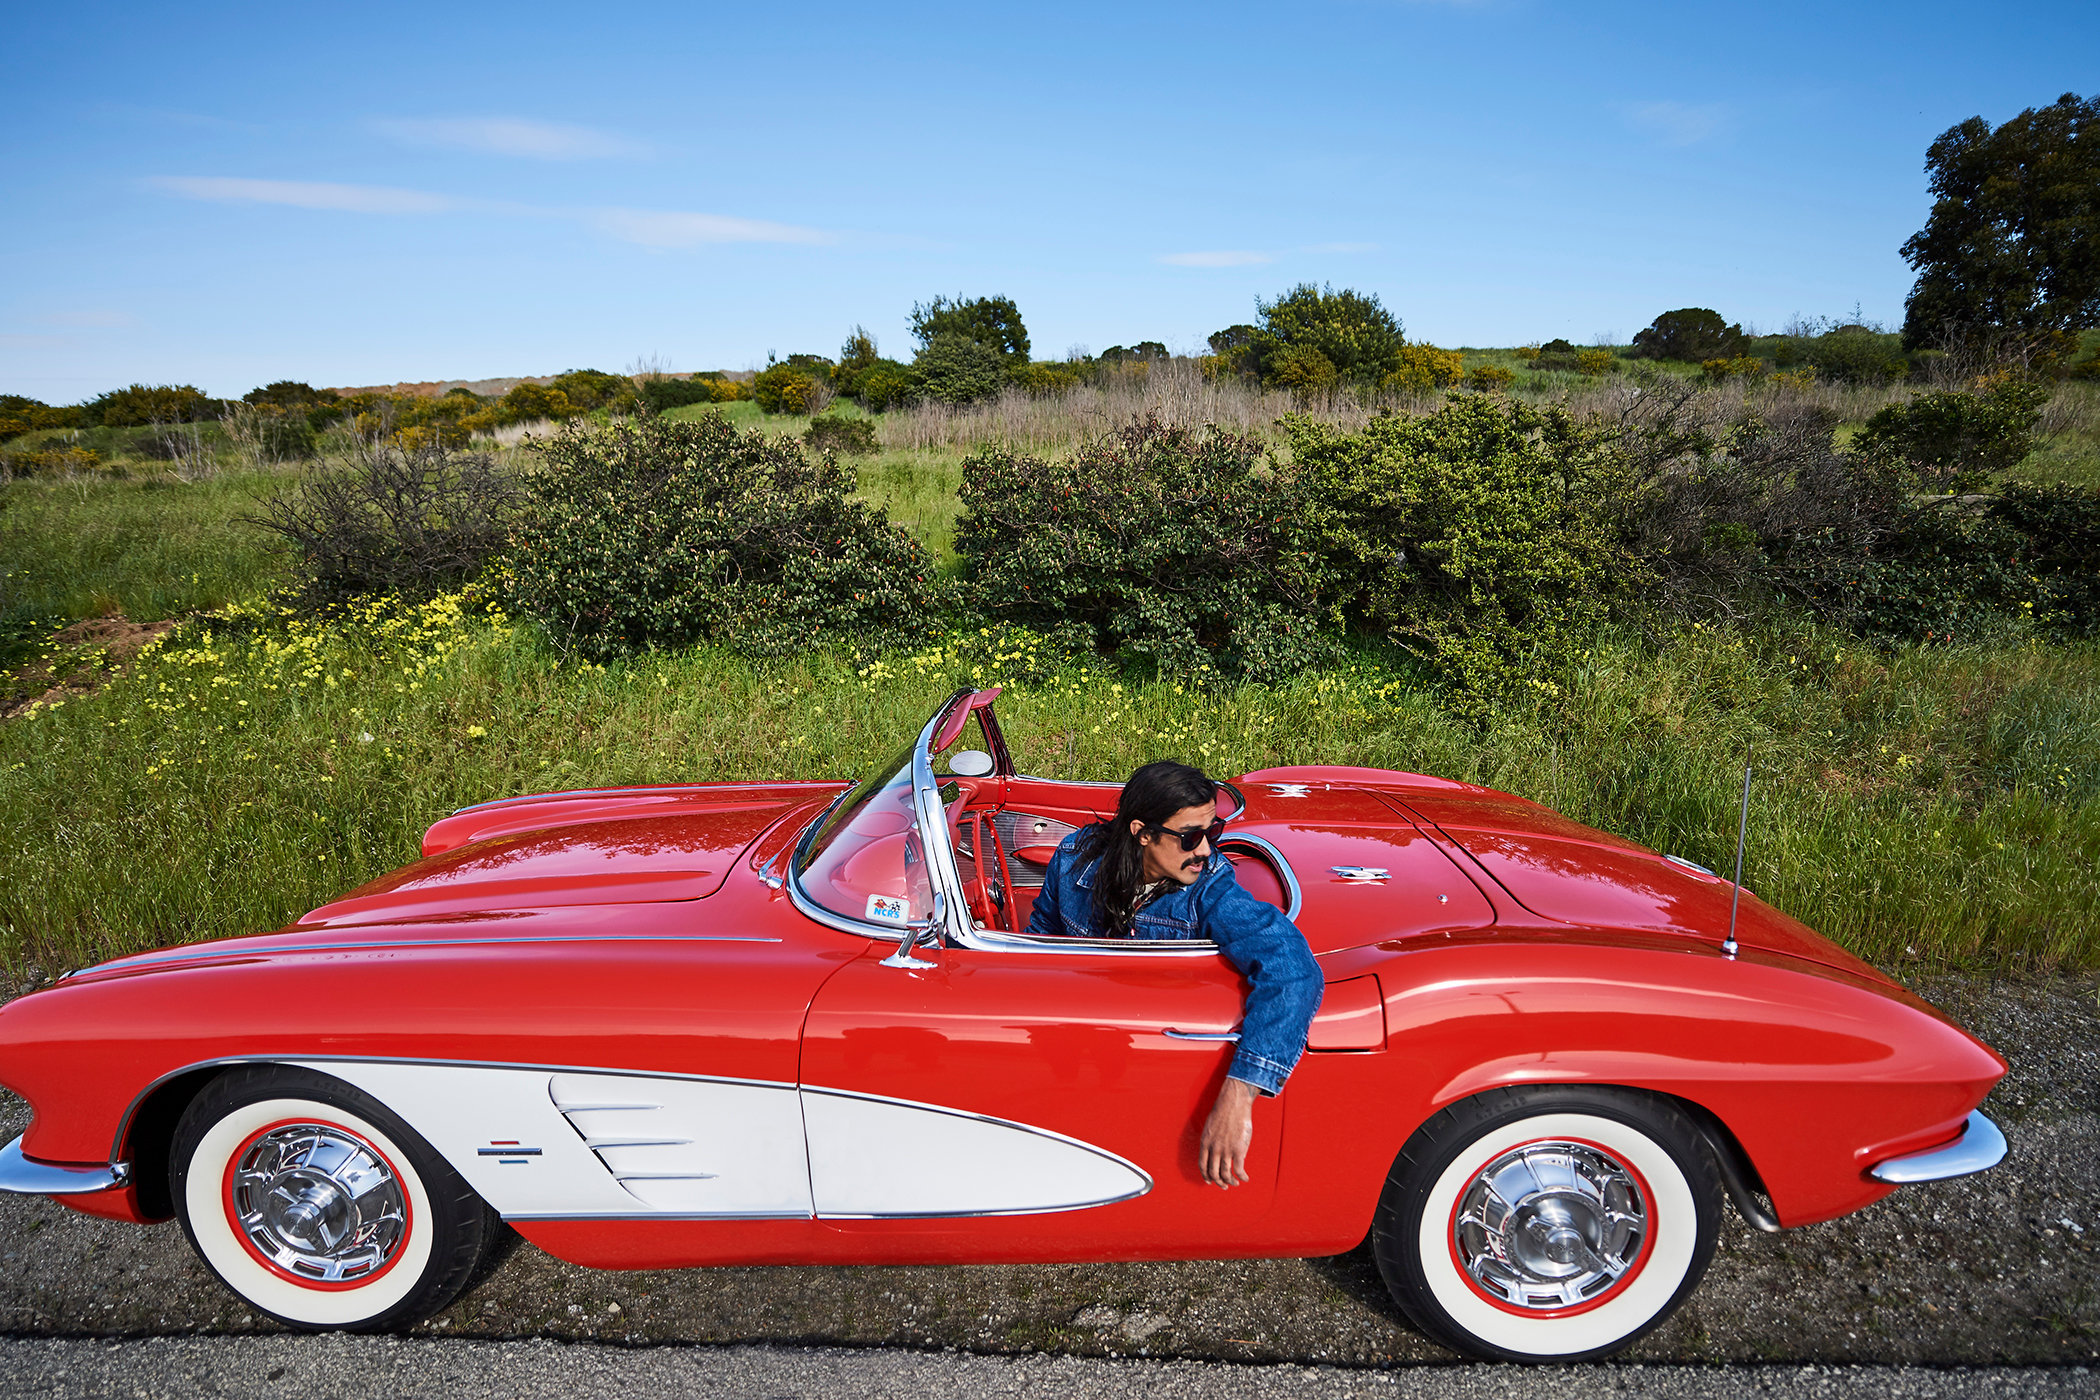 P&A_Classic_61Corvette_Location_Talent_DSC_1424.jpg